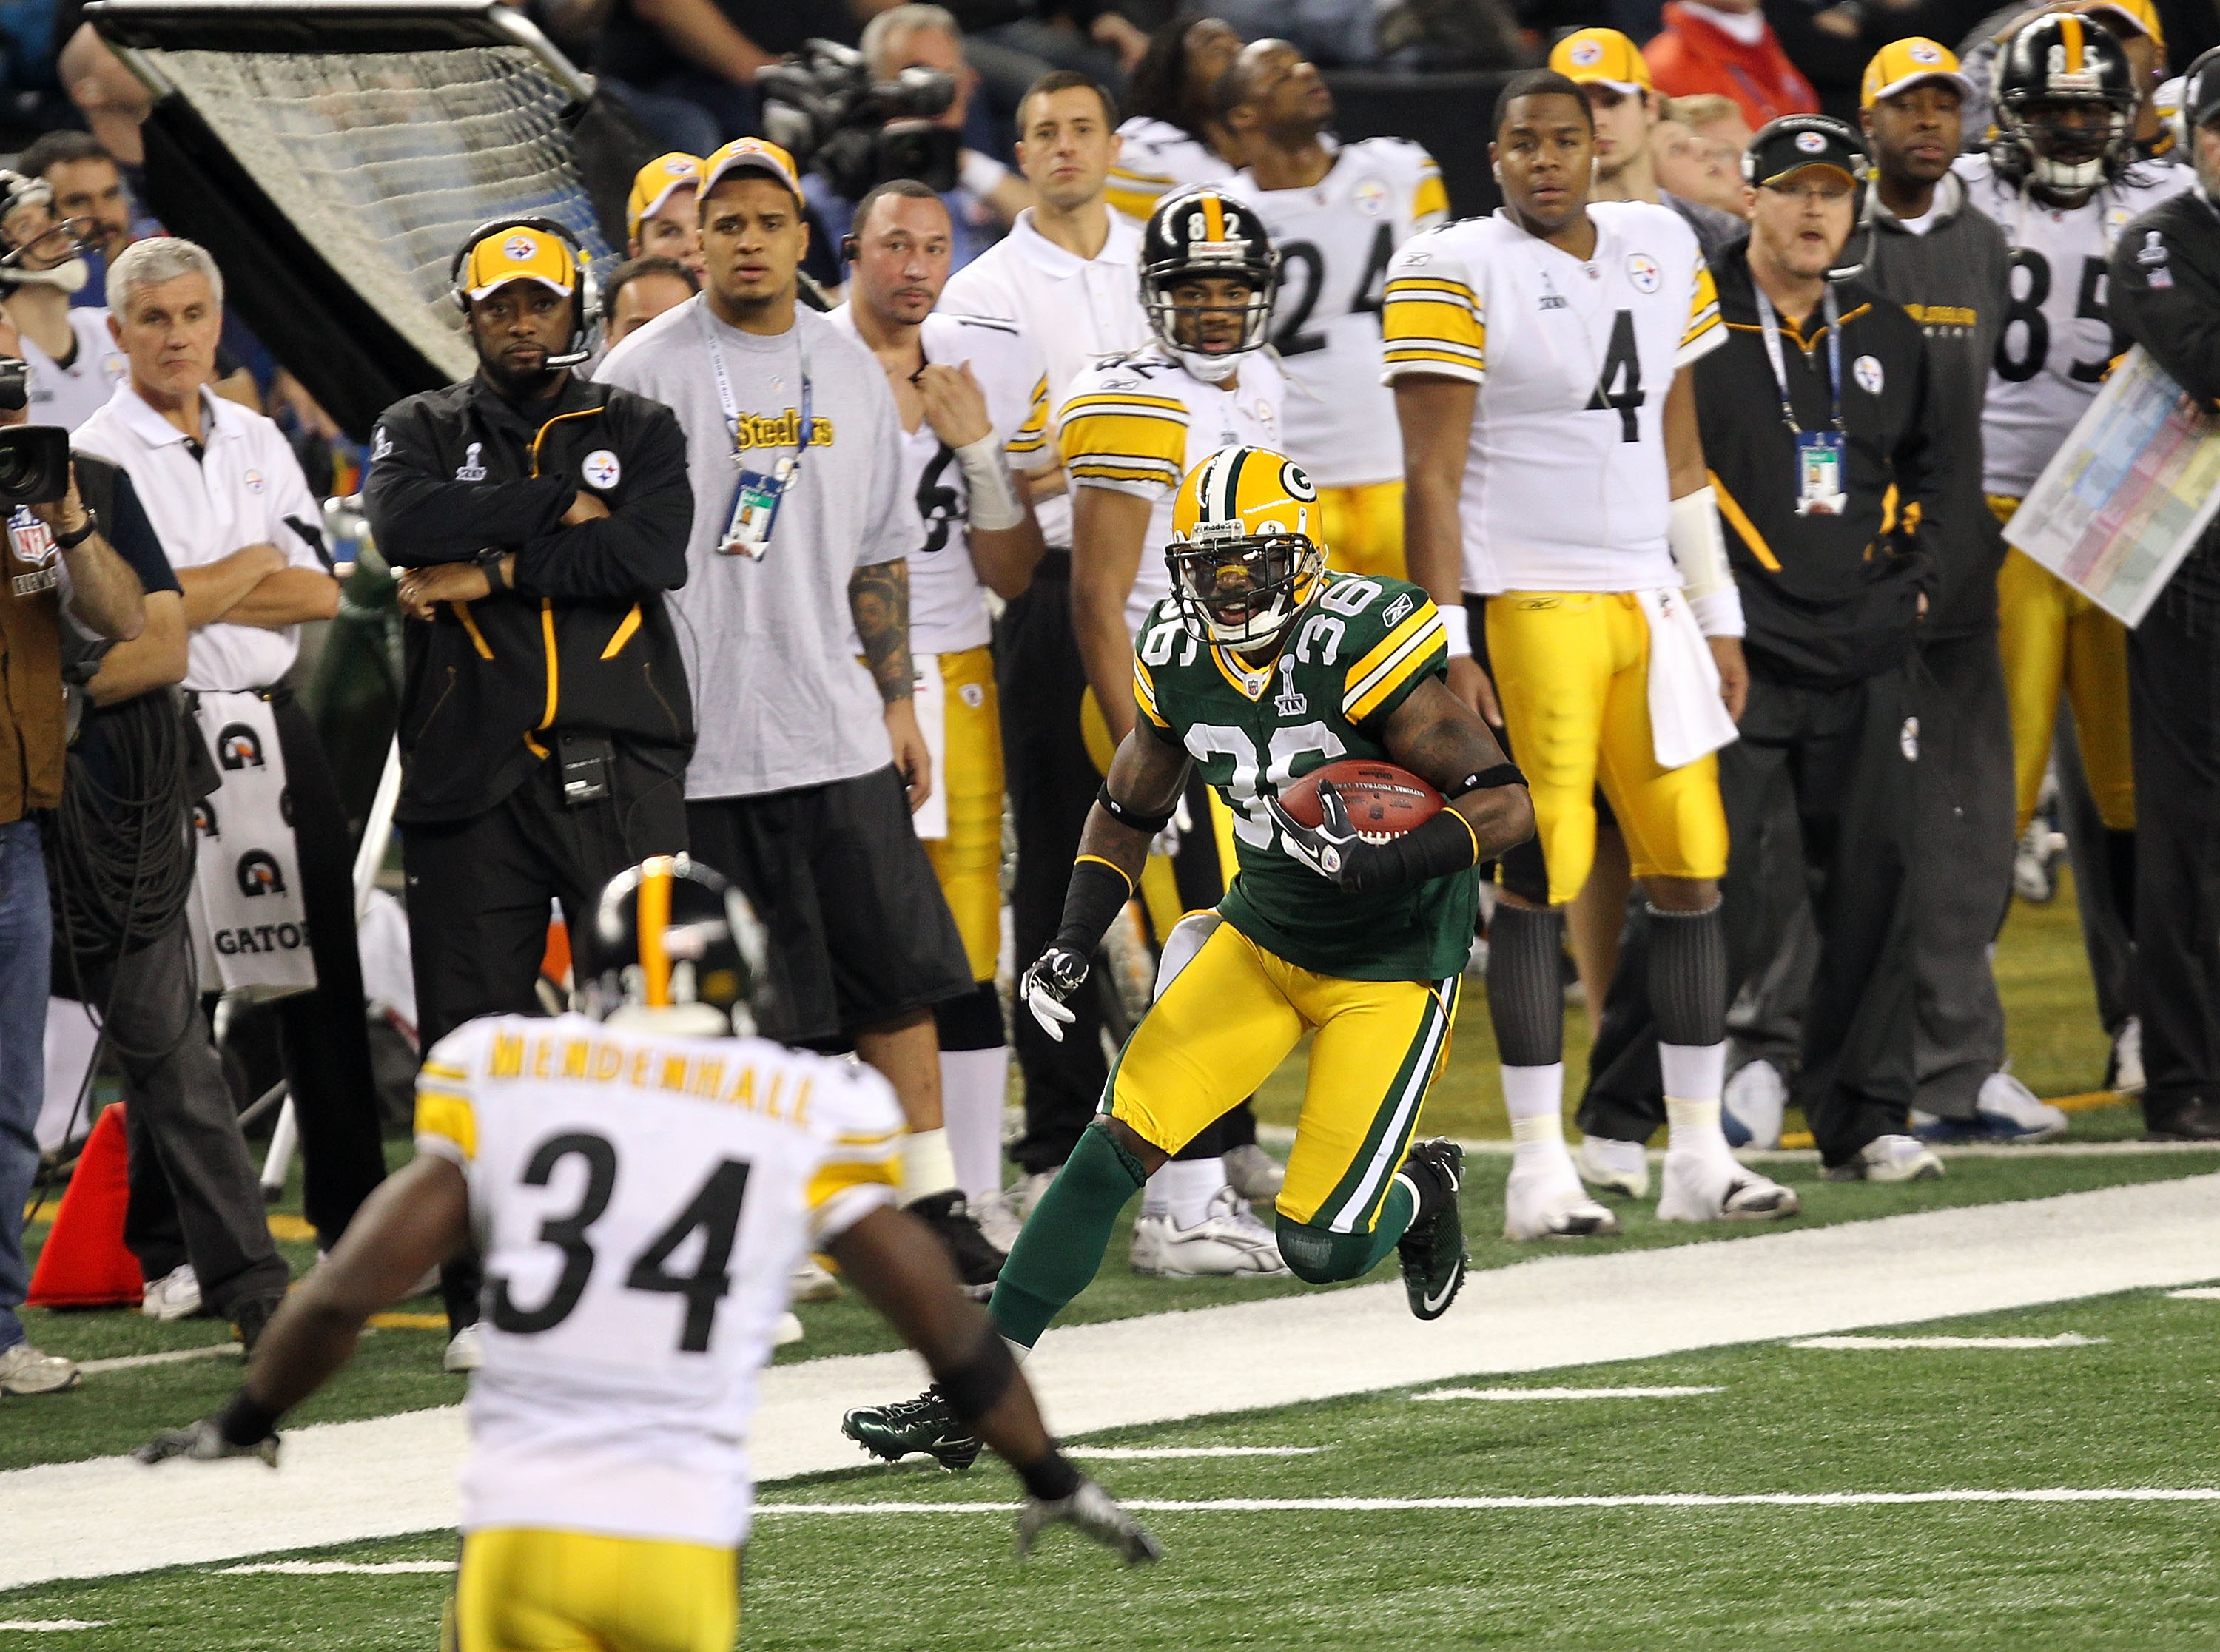 ARLINGTON, TX - FEBRUARY 06:  Nick Collins #36 of the Green Bay Packers returns an interception for a touchdown against Rashard Mendenhall #34 of the Pittsburgh Steelers during Super Bowl XLV at Cowboys Stadium on February 6, 2011 in Arlington, Texas.  (P